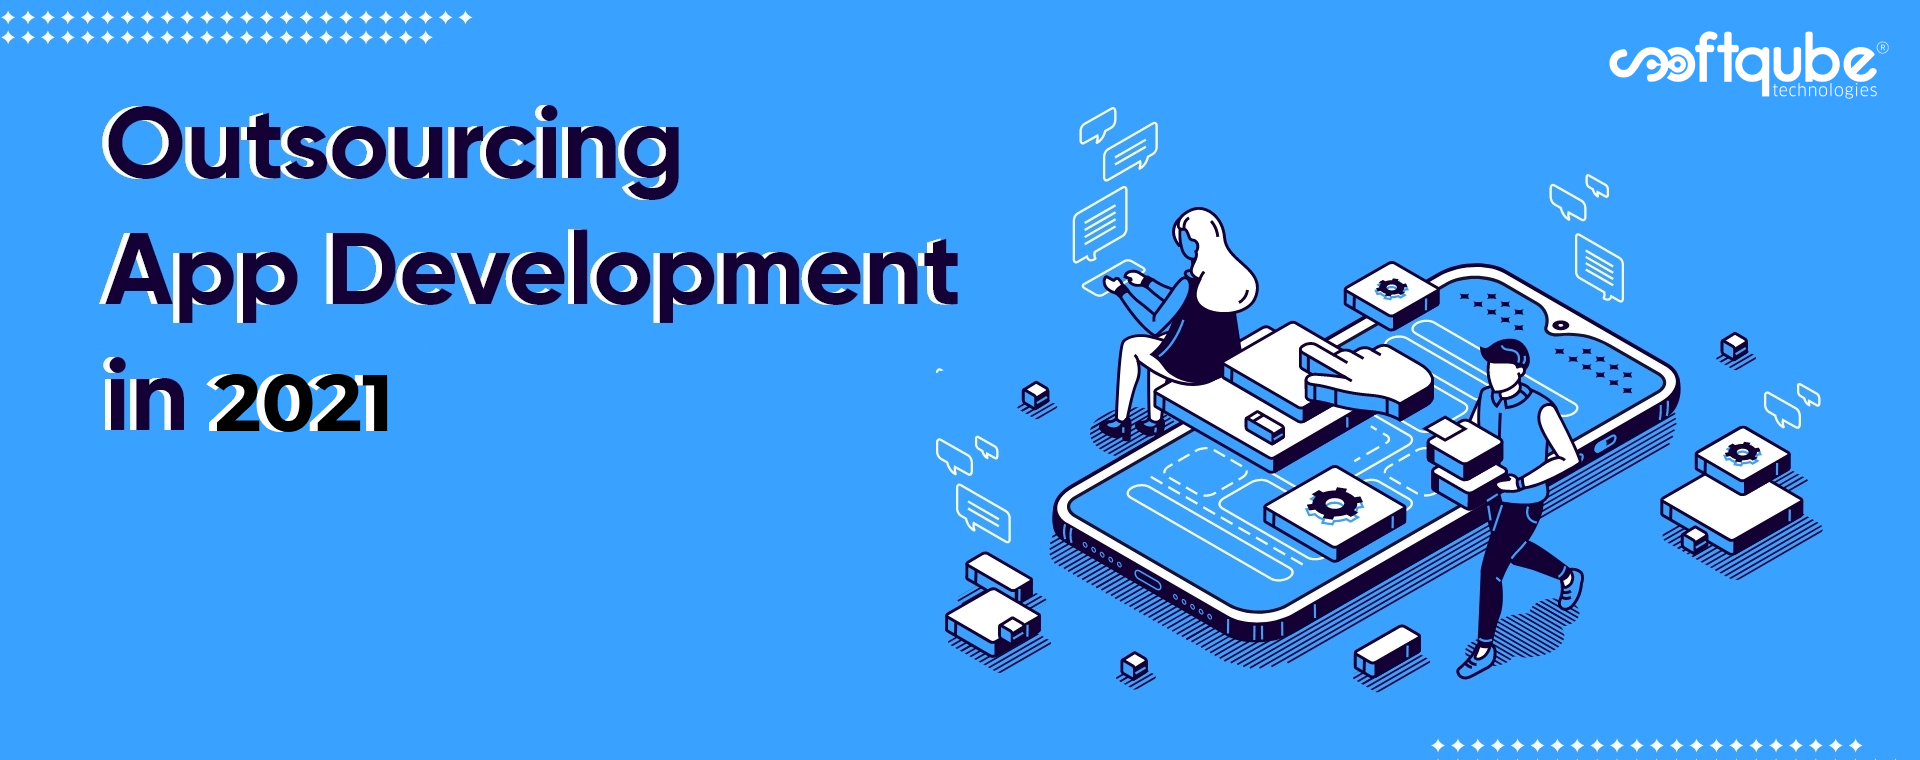 Let Us Know About The Outsource of Mobile App Development In 2021